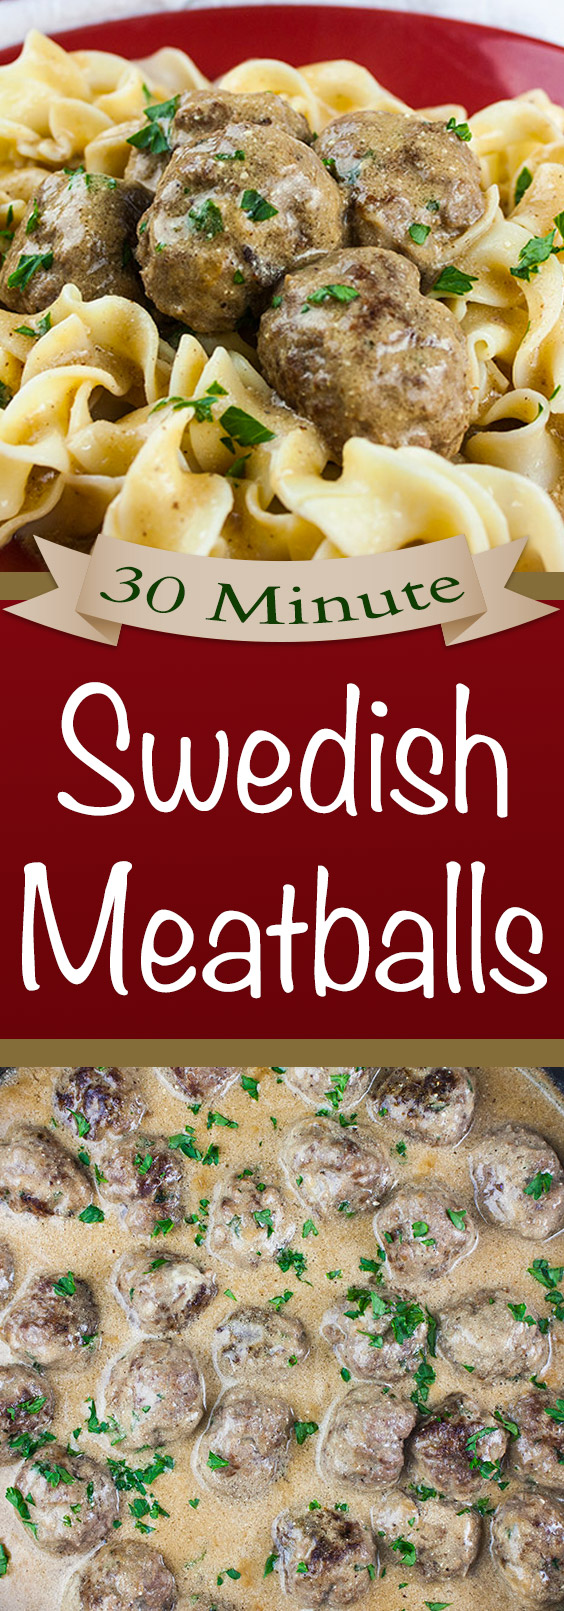 30 Minute Swedish Meatballs - Tender, juicy meatballs smothered in a rich, creamy, flavor packed gravy! Perfect weeknight meal.